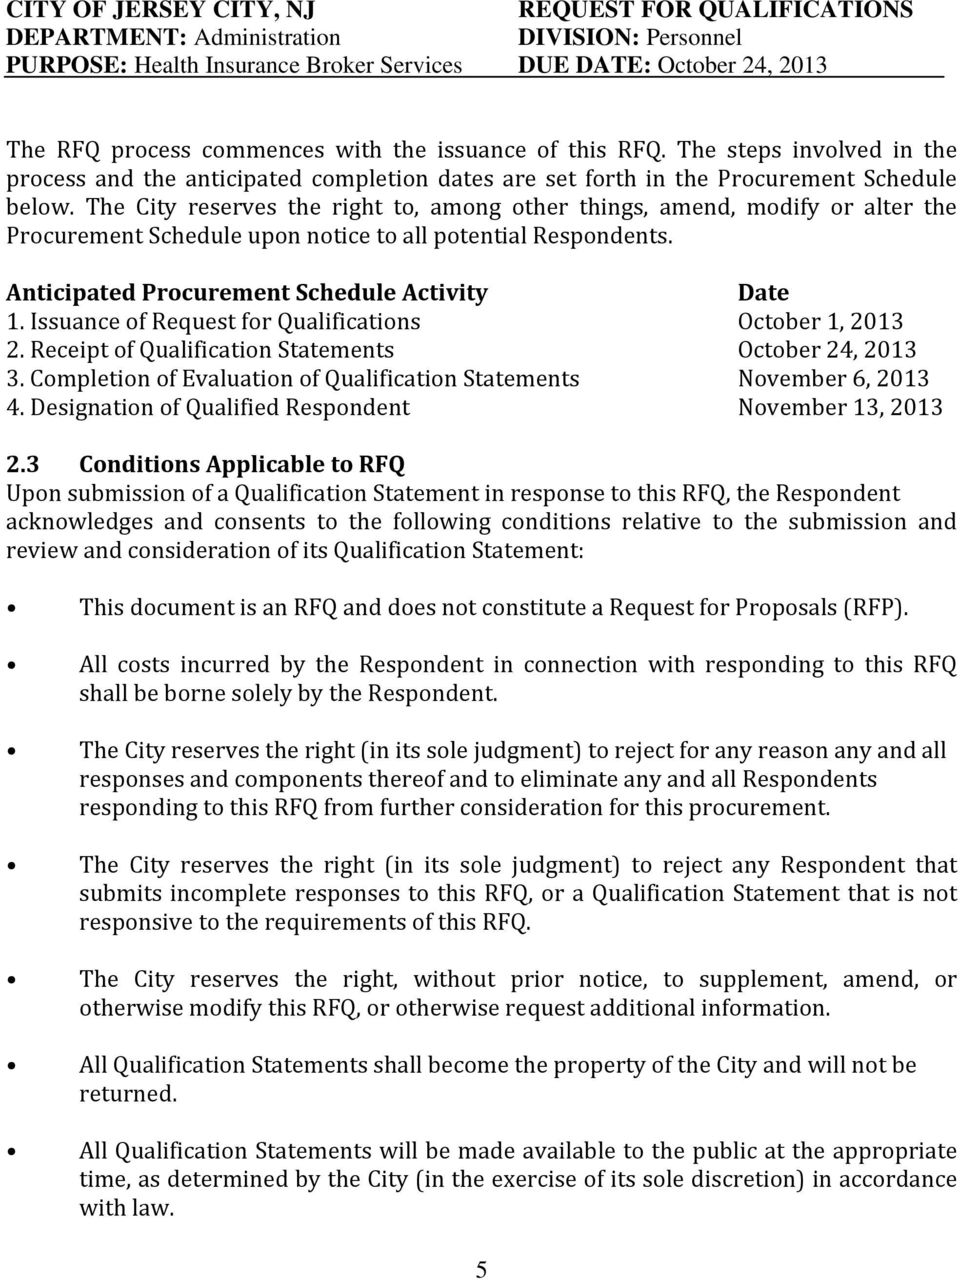 The City reserves the right to, among other things, amend, modify or alter the Procurement Schedule upon notice to all potential Respondents. Anticipated Procurement Schedule Activity Date 1.